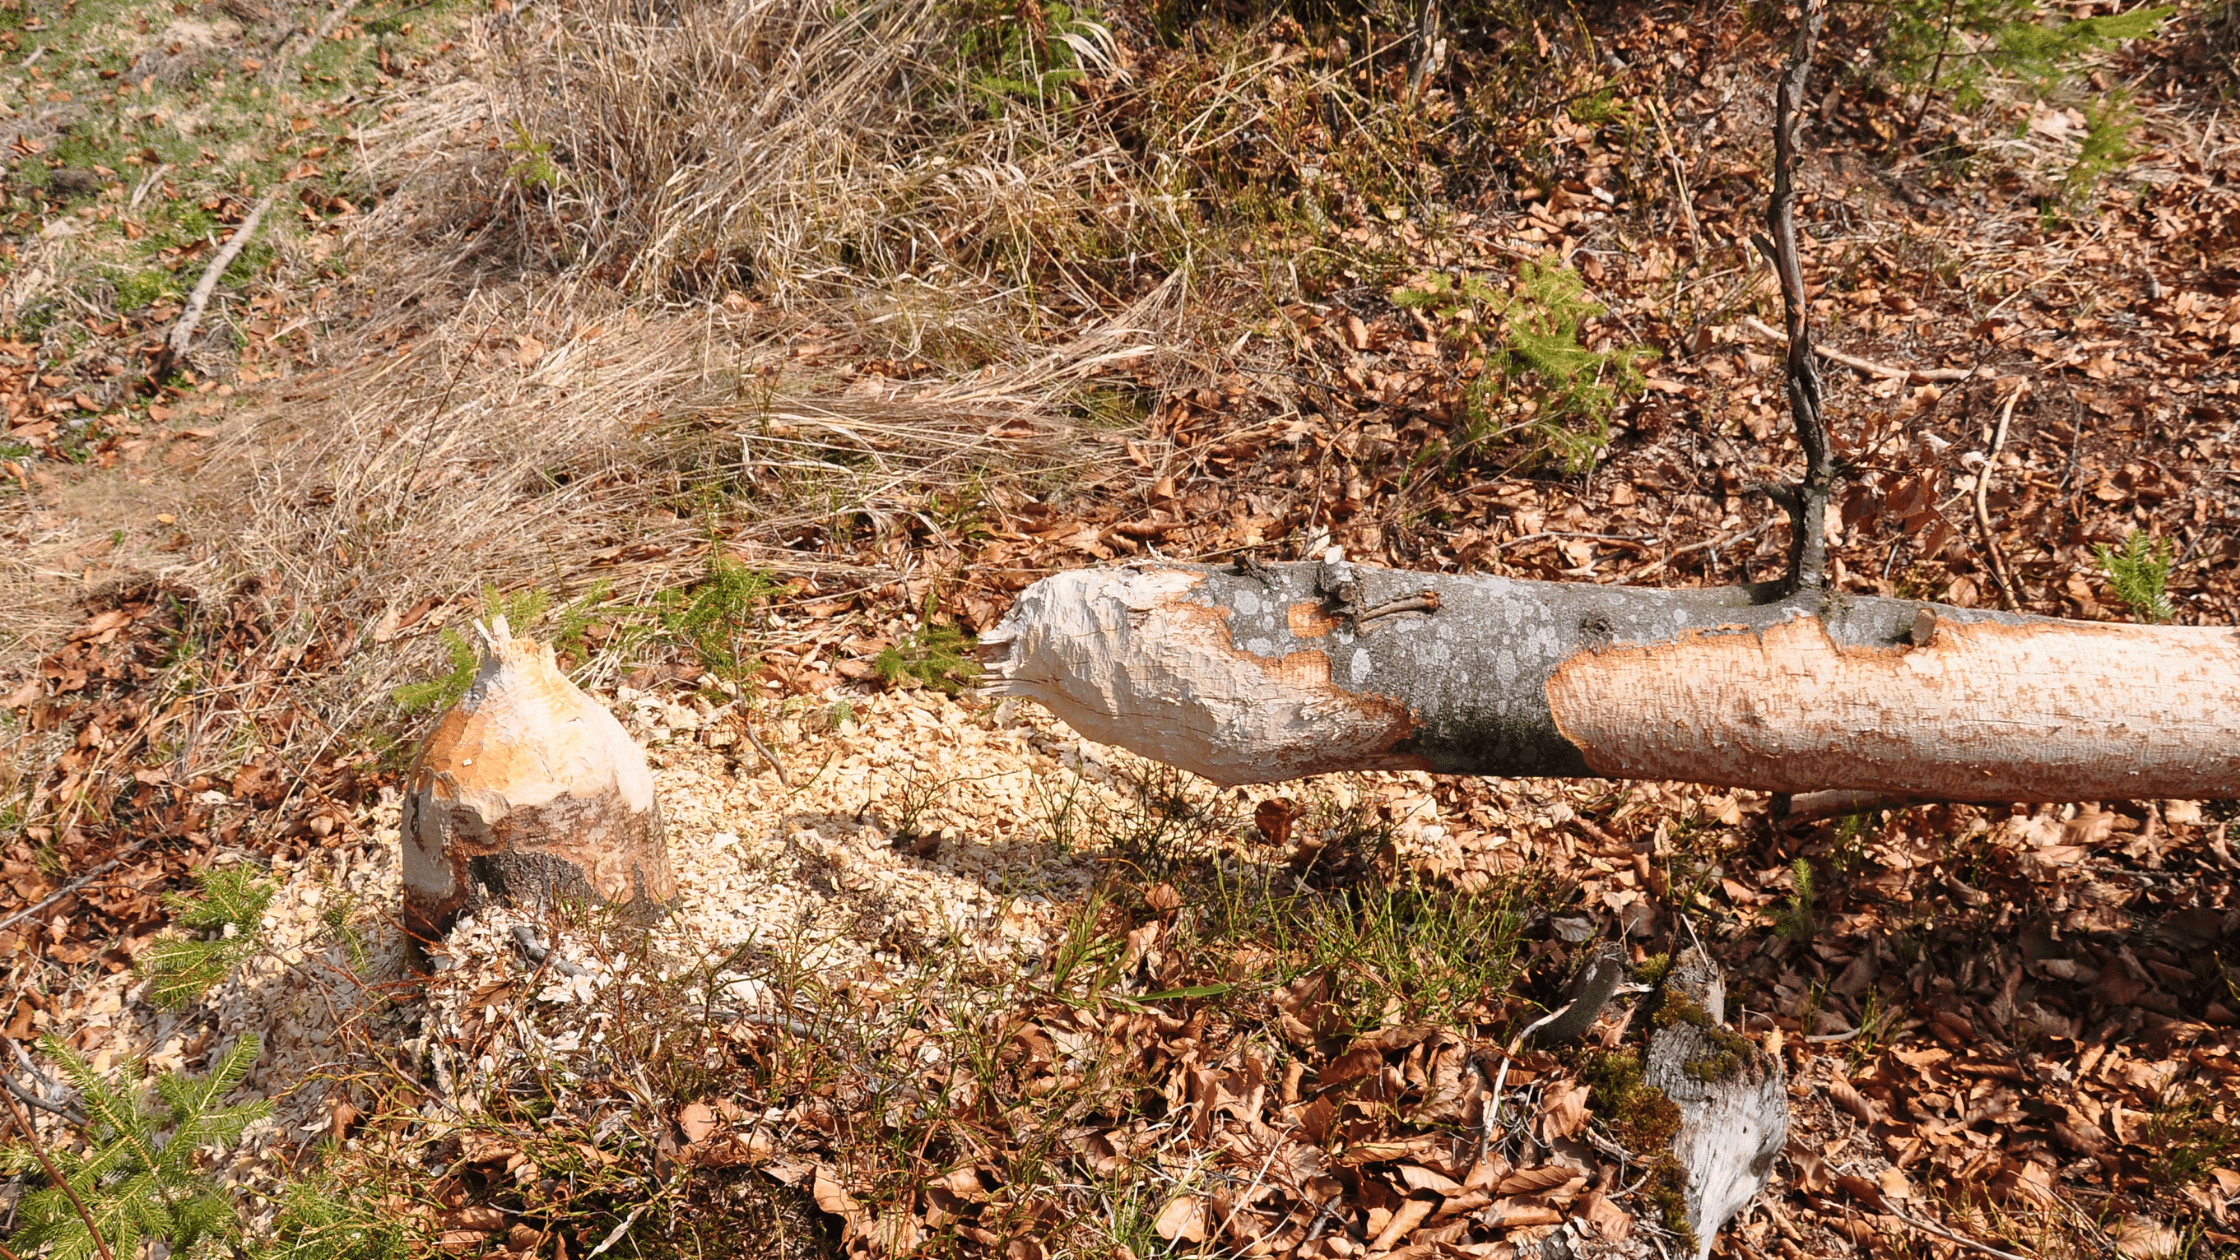 A beaver-felled tree and what will become the deadwood habitat